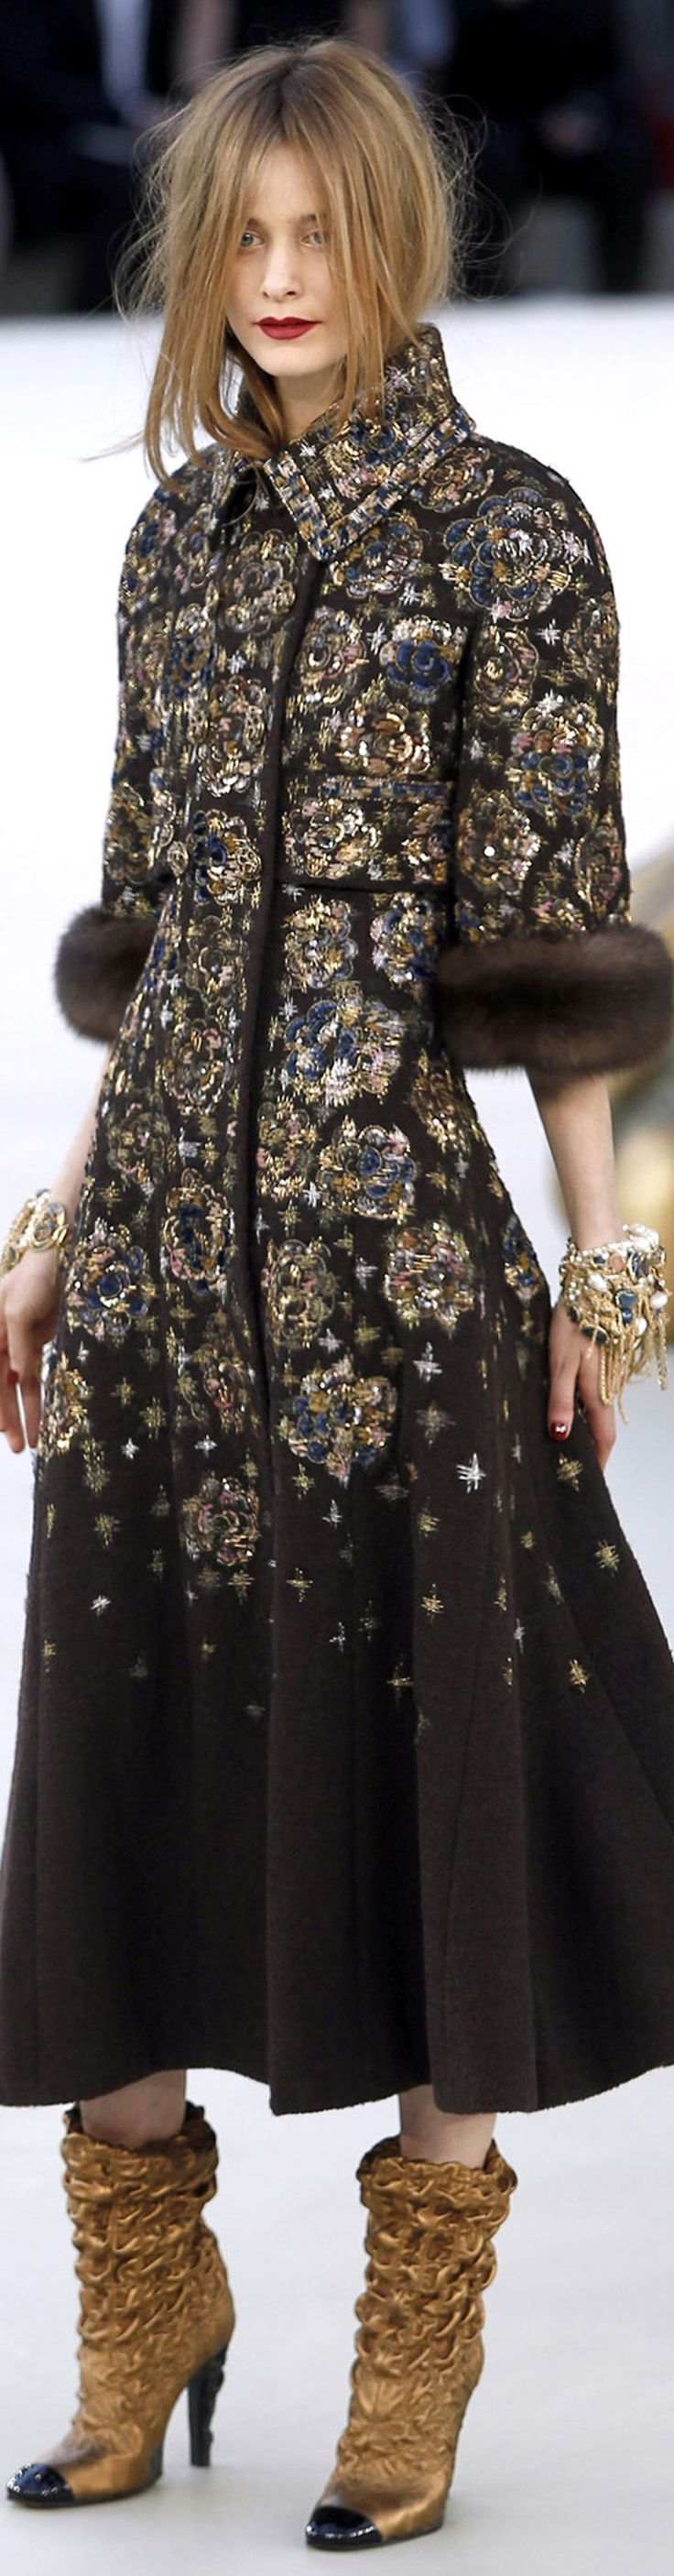 www.2locos.com Chanel fall 2010 couture